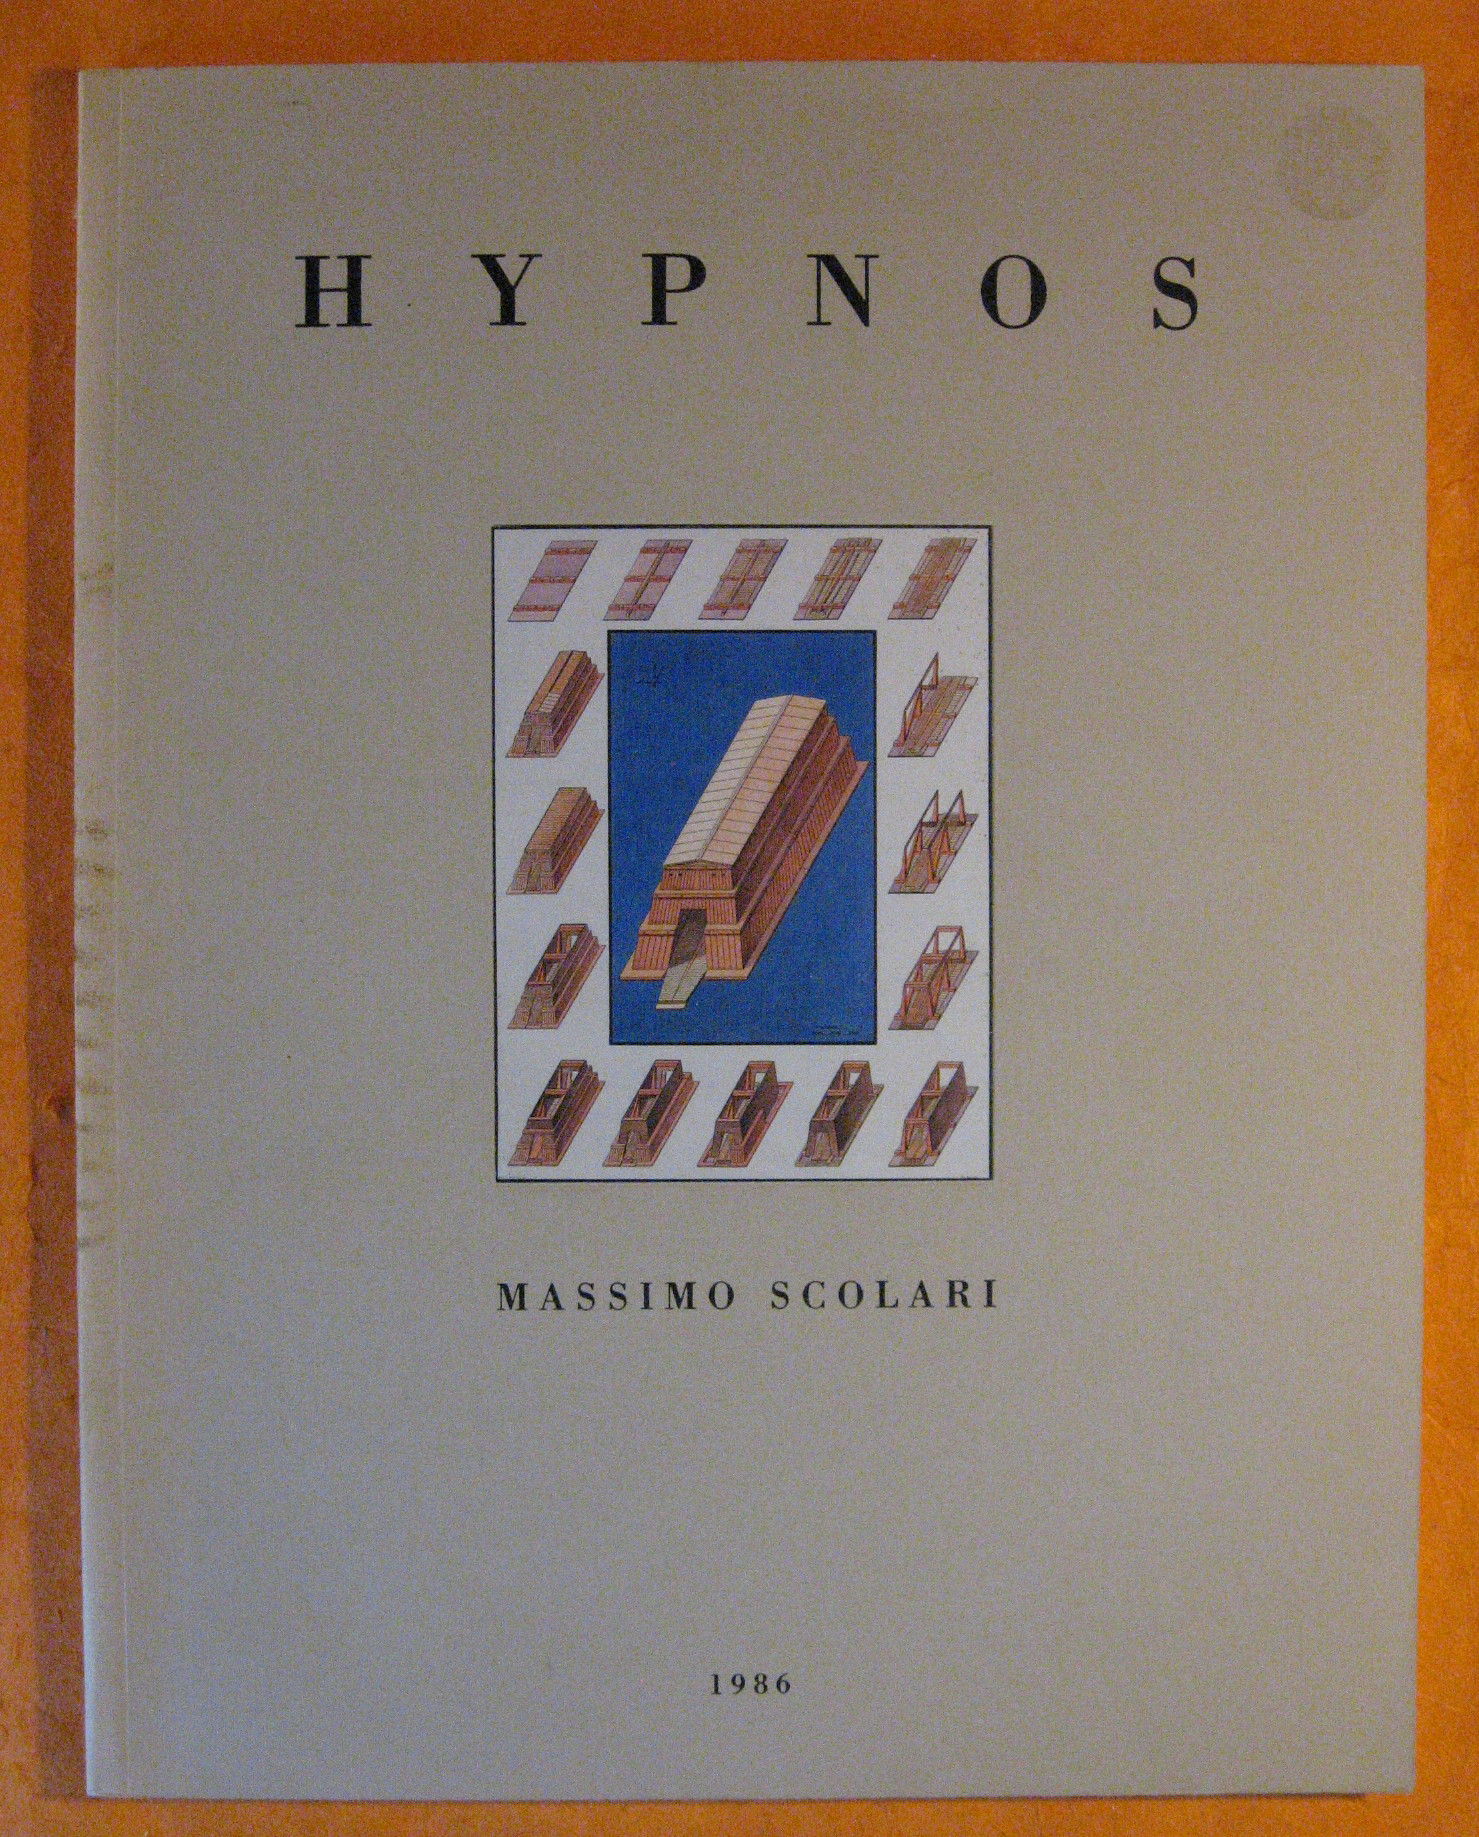 Hypnos:  Massimo Scolari, Works 1900-1986, Scolari, Massimo. Foreword by Jose Rafael Moneo; Essay by Franco Rella